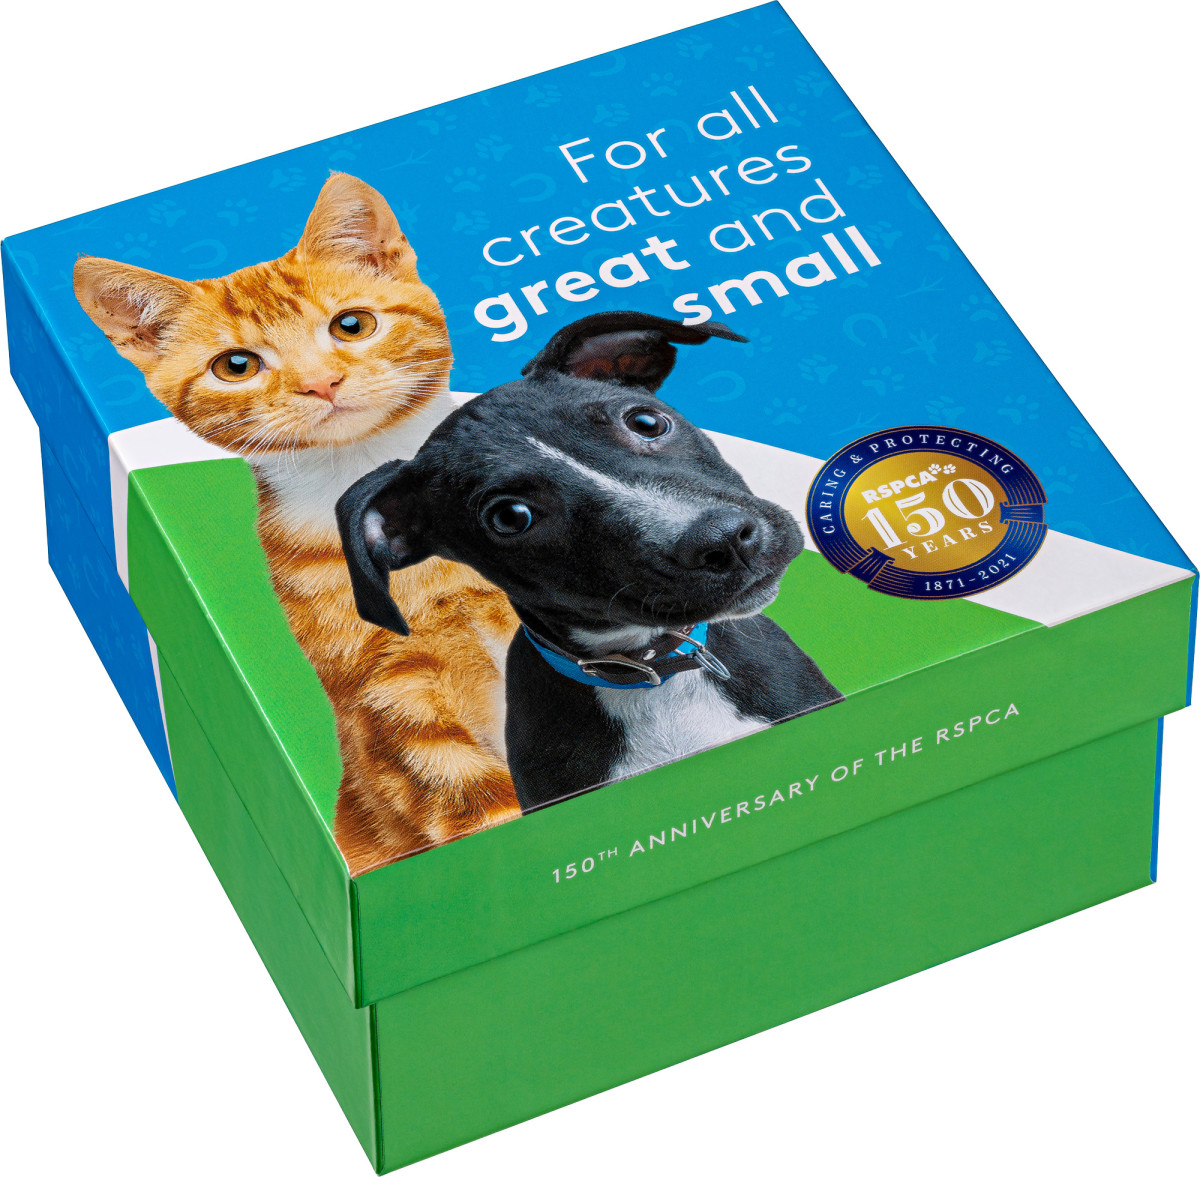 This cute collection box has space inside to hold all of the coins in the RSPCA set and features a cute puppy and kitten on the top.